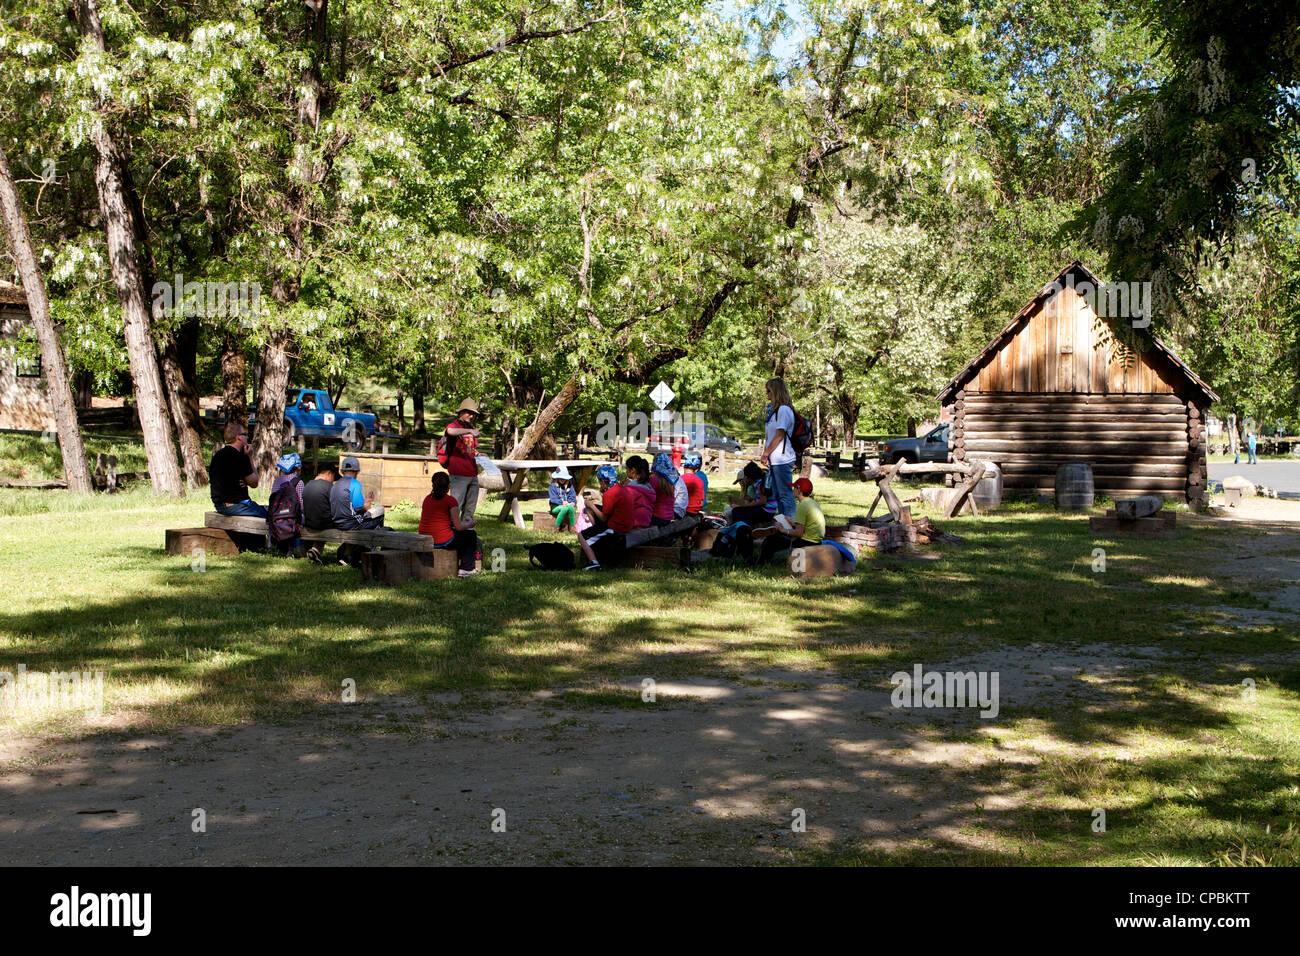 Students at the Marshall Gold Discovery state historic park in Coloma El Dorado County California USA - Stock Image